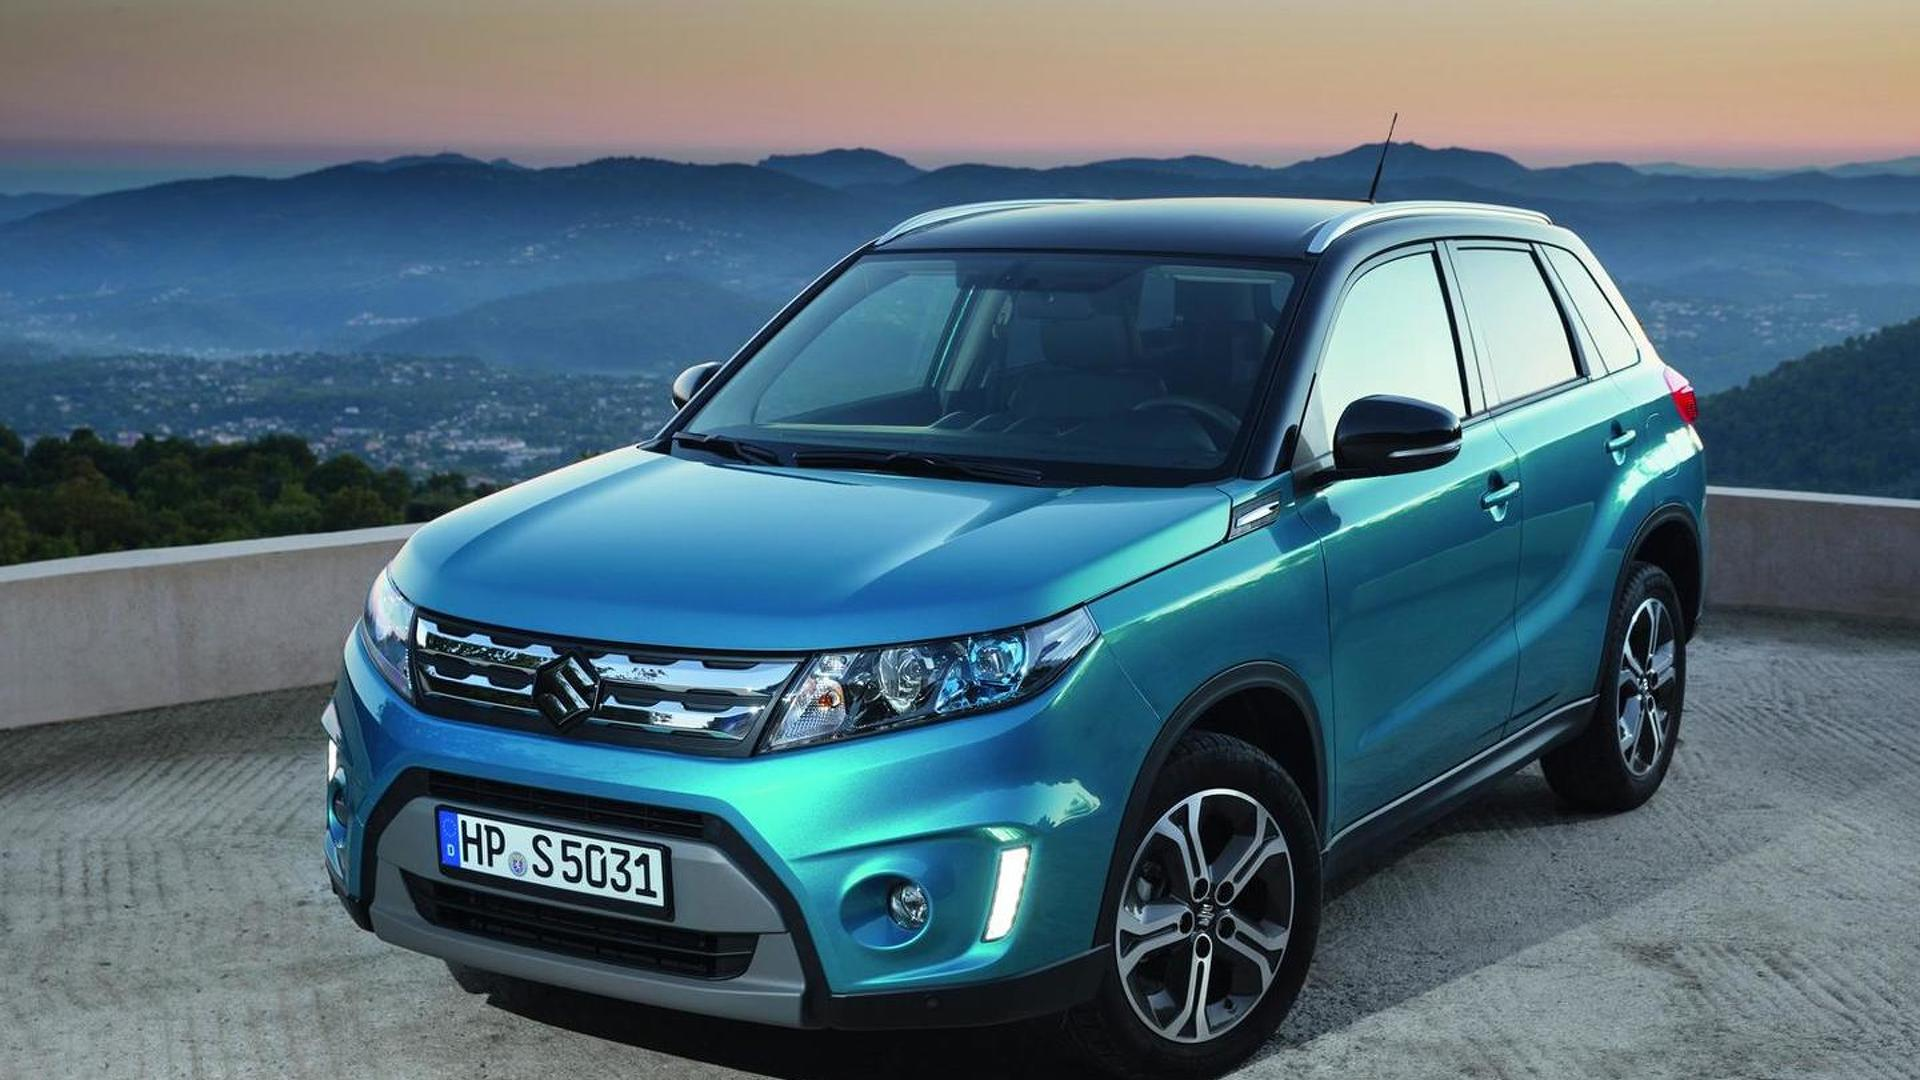 2015 Suzuki Vitara priced from £13,999 in UK